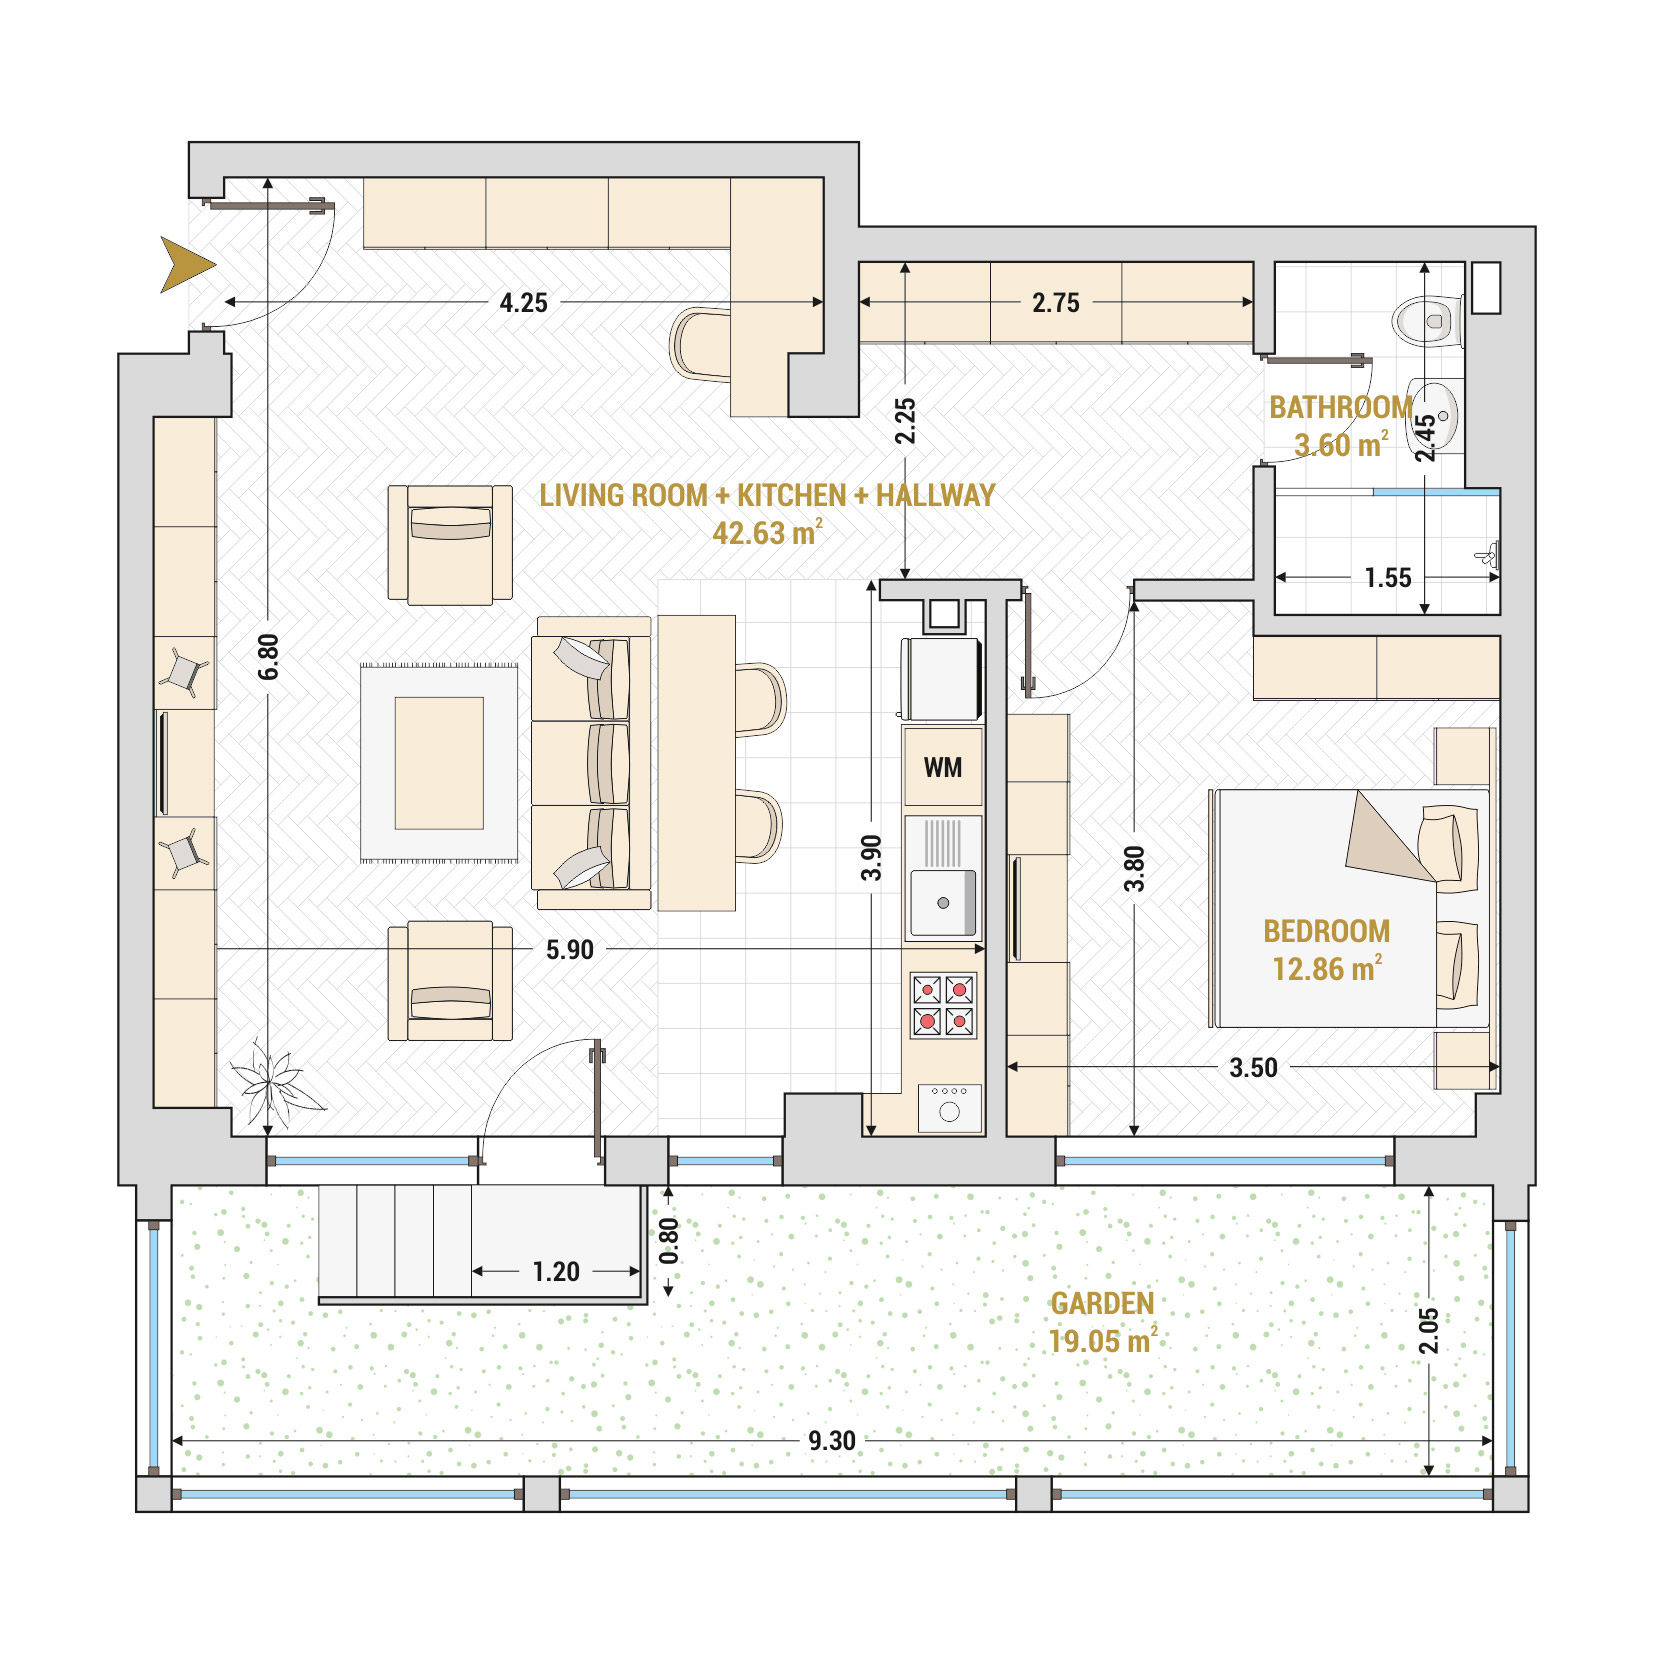 Catedral Residence - 2 Room Apartment for Sale - Bucharest - Romania - Type 8 – S1A